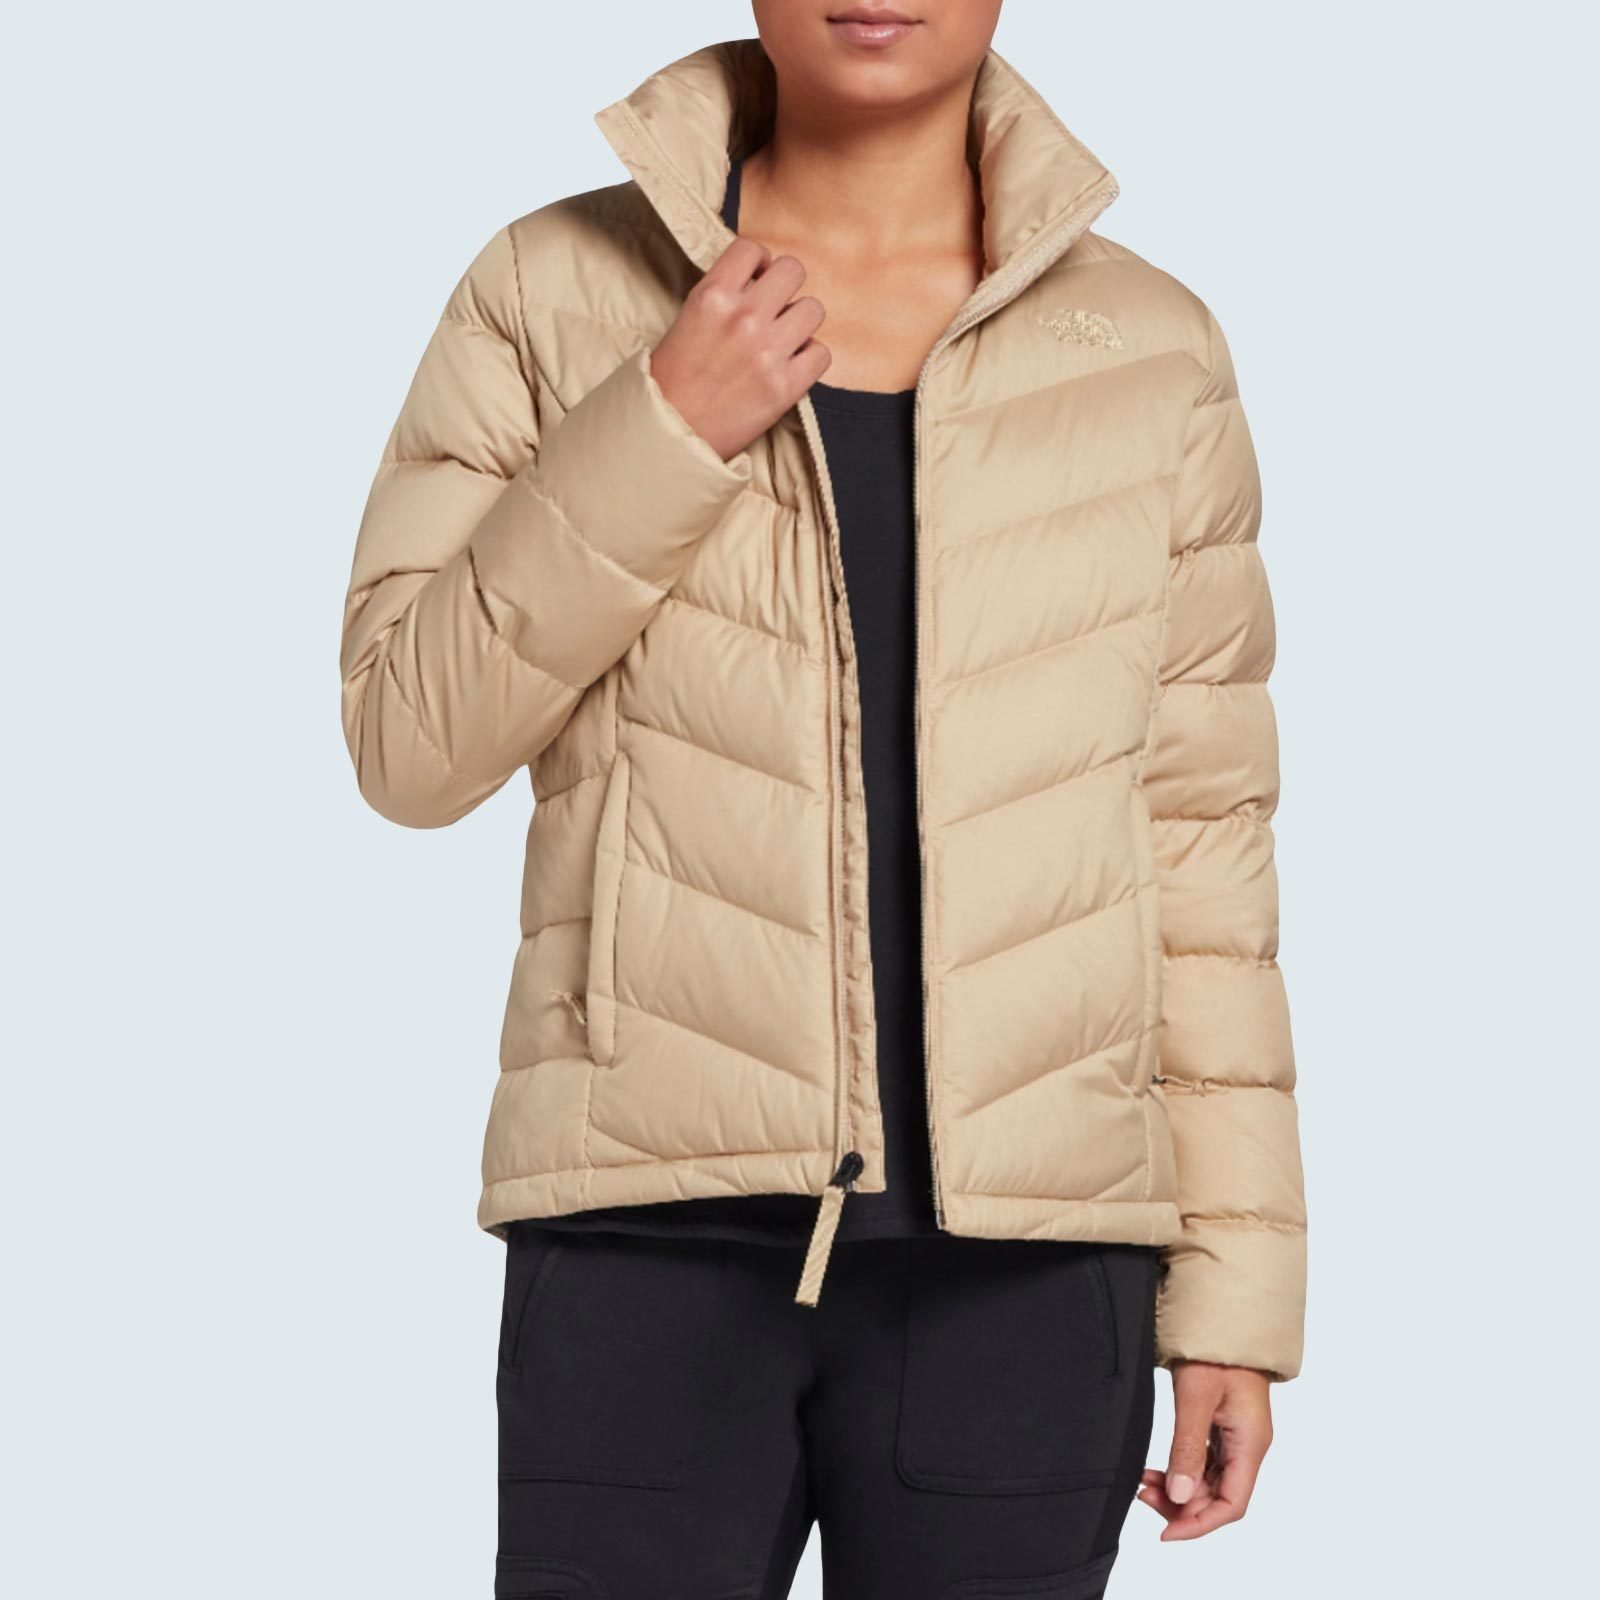 The North Face men's and women's Alpz 2.0 Down outwear